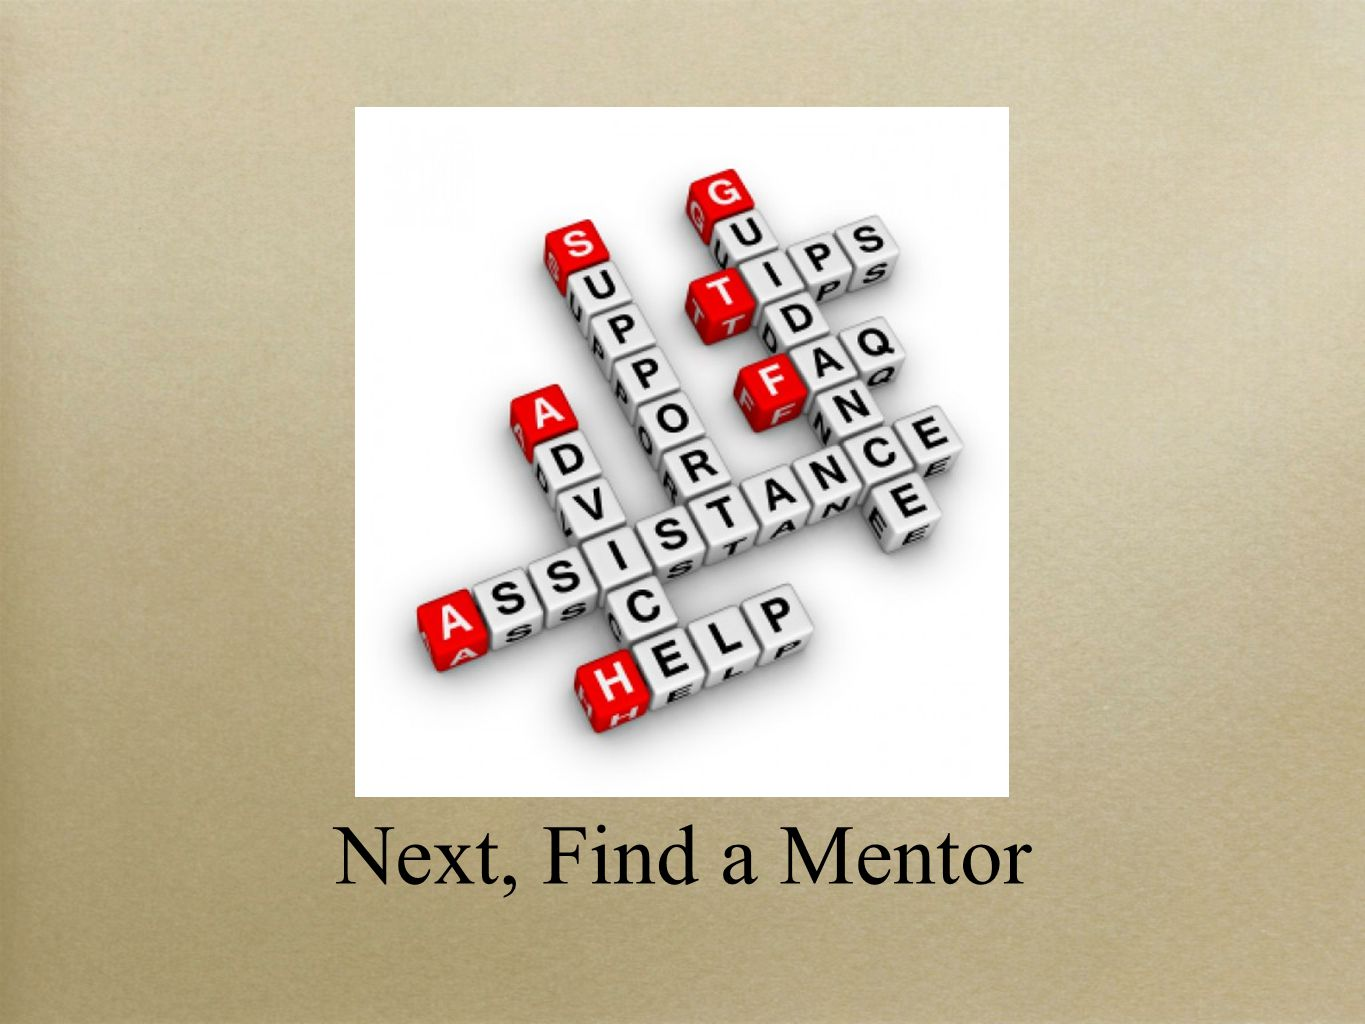 Next, Find a Mentor